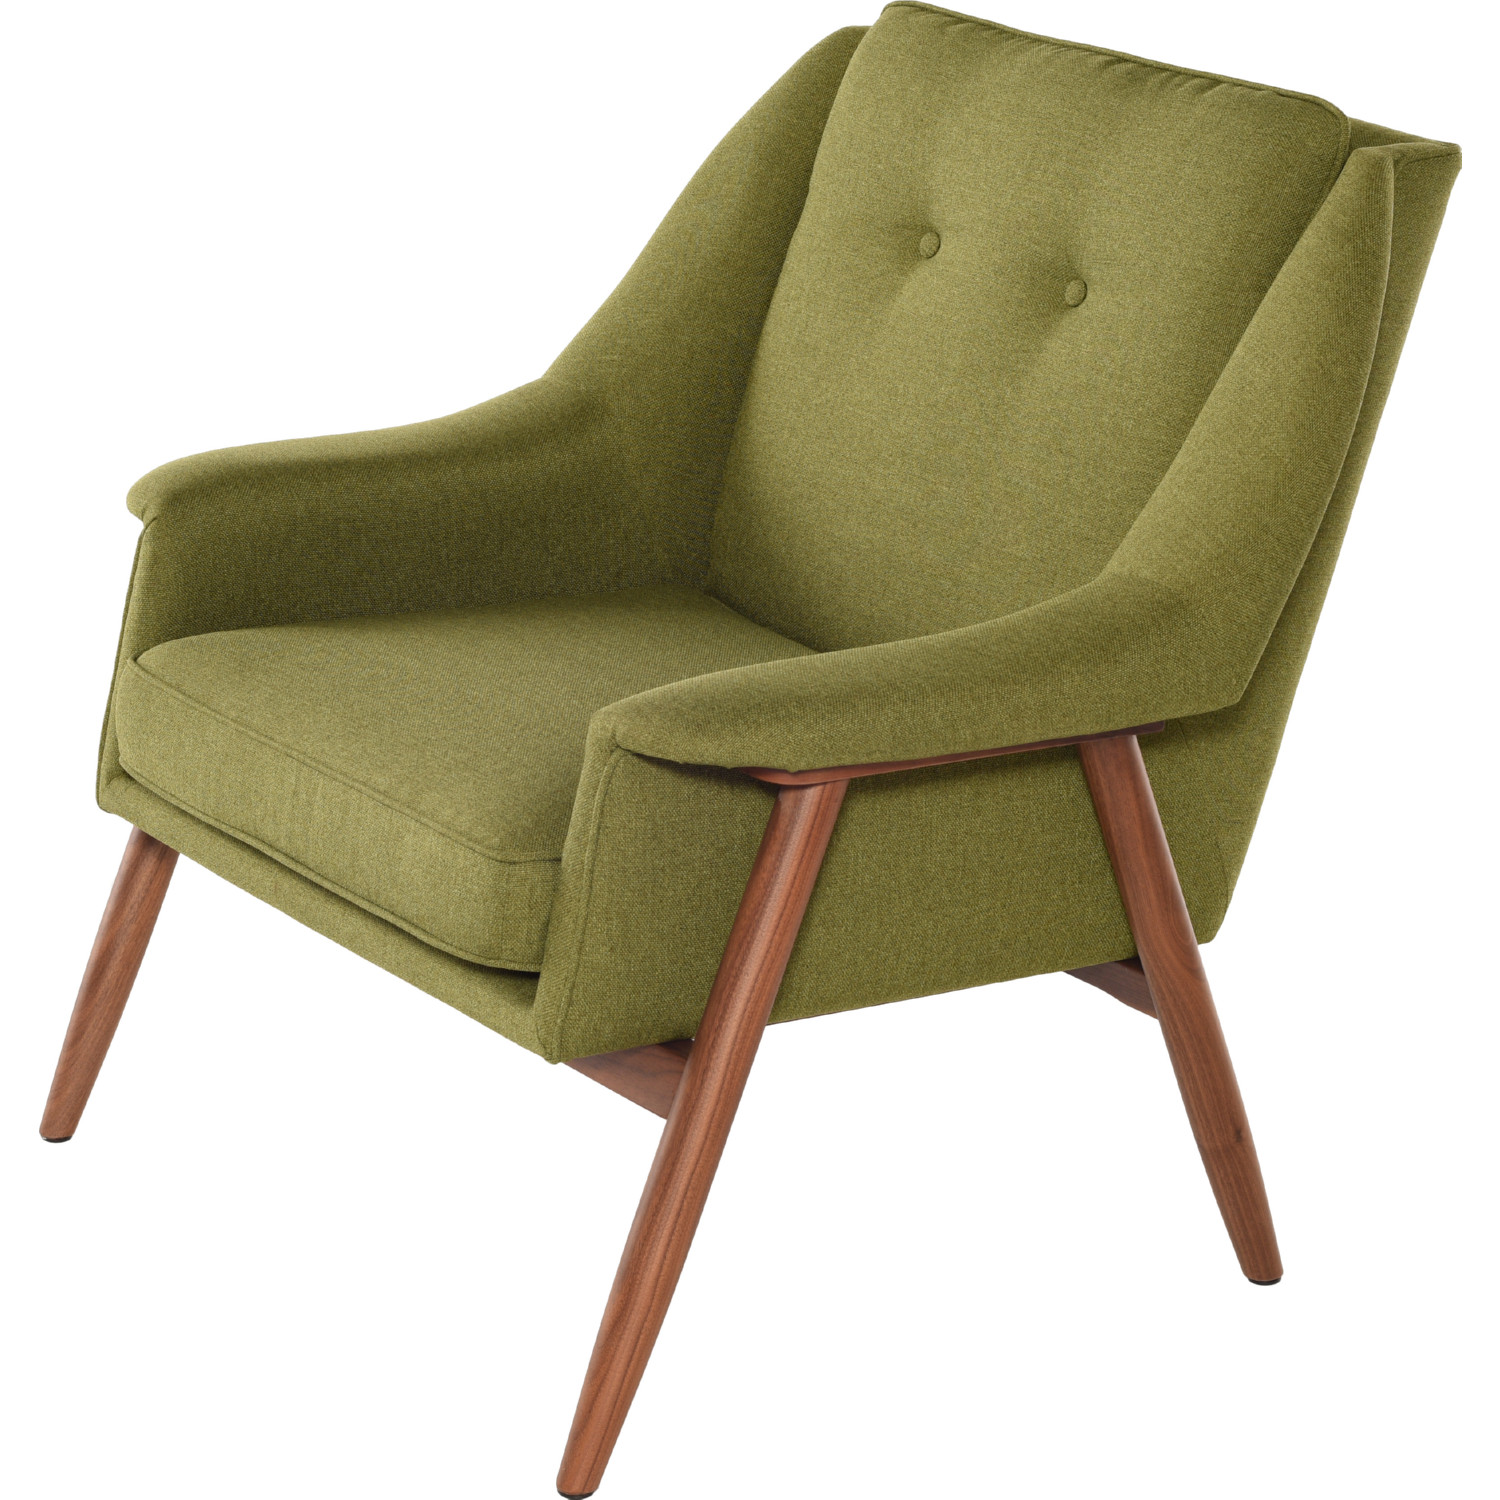 Pleasant Grace Accent Chair In Olive Fabric On Walnut Frame By Nuevo Modern Furniture Squirreltailoven Fun Painted Chair Ideas Images Squirreltailovenorg